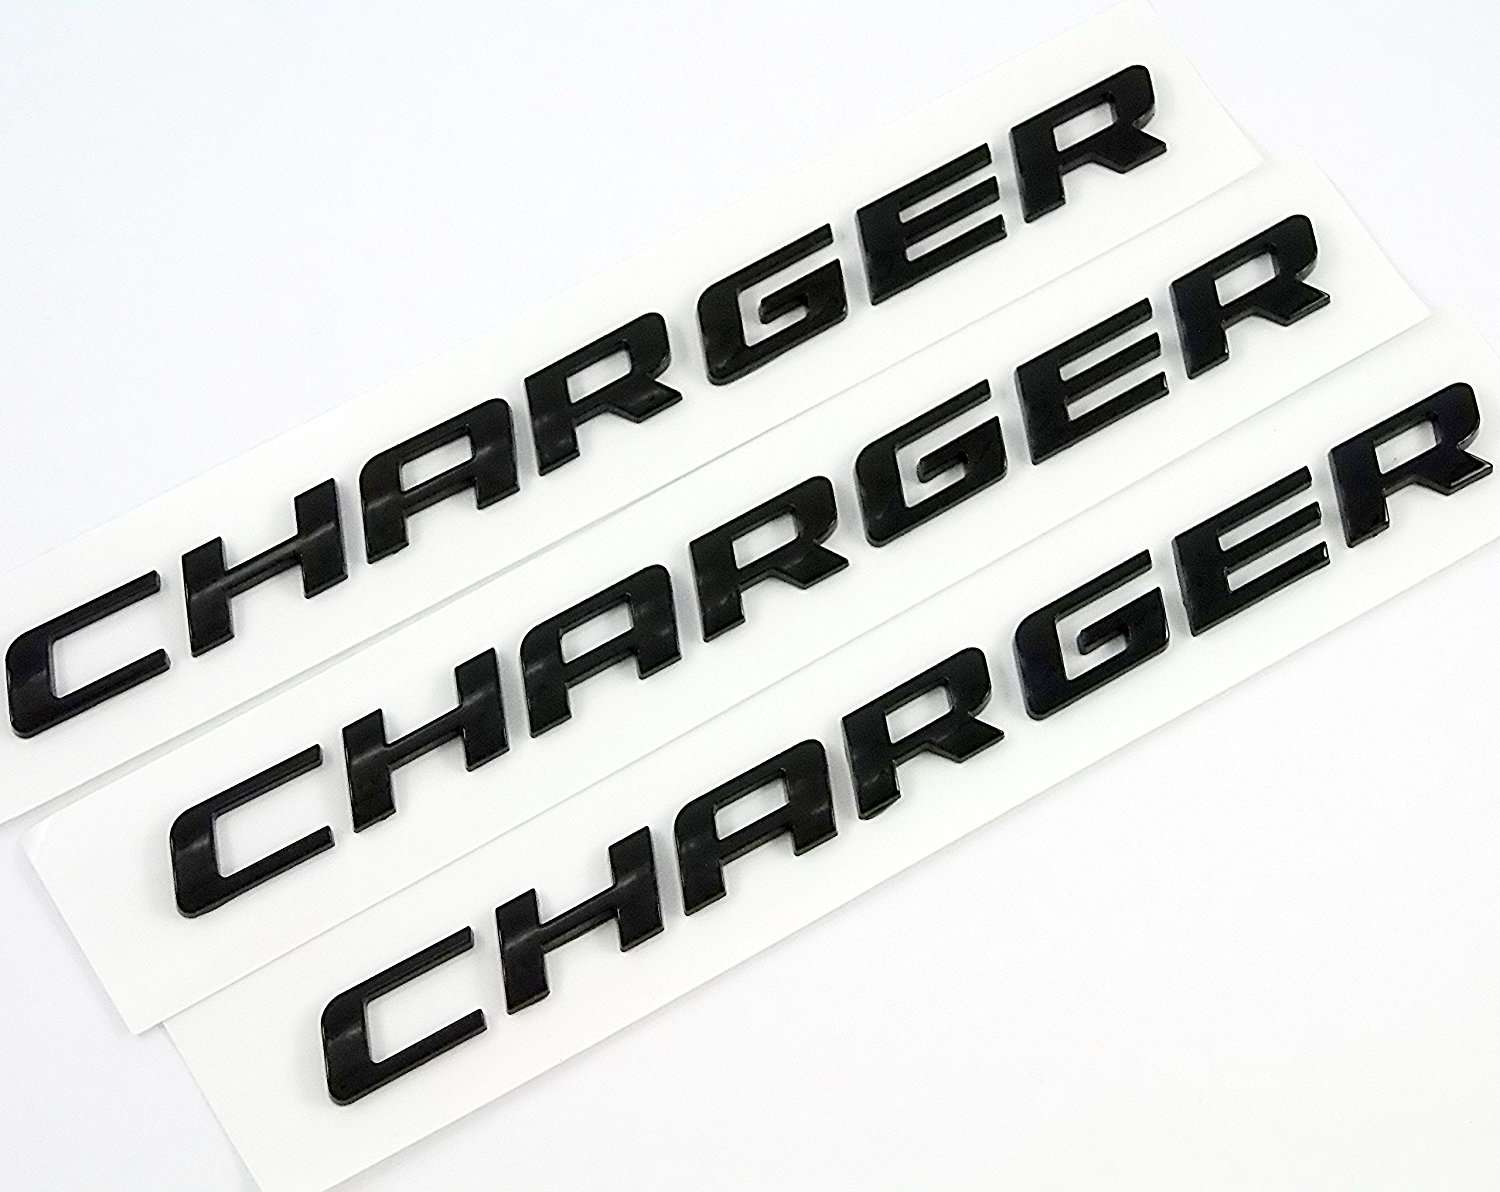 Black Yoaoo-Do Yoaoo/Â 1x Black OEM Original Charger Nameplate Emblem Badge Decal for Dodge Charger Chrysler Mopar Chrome Finish